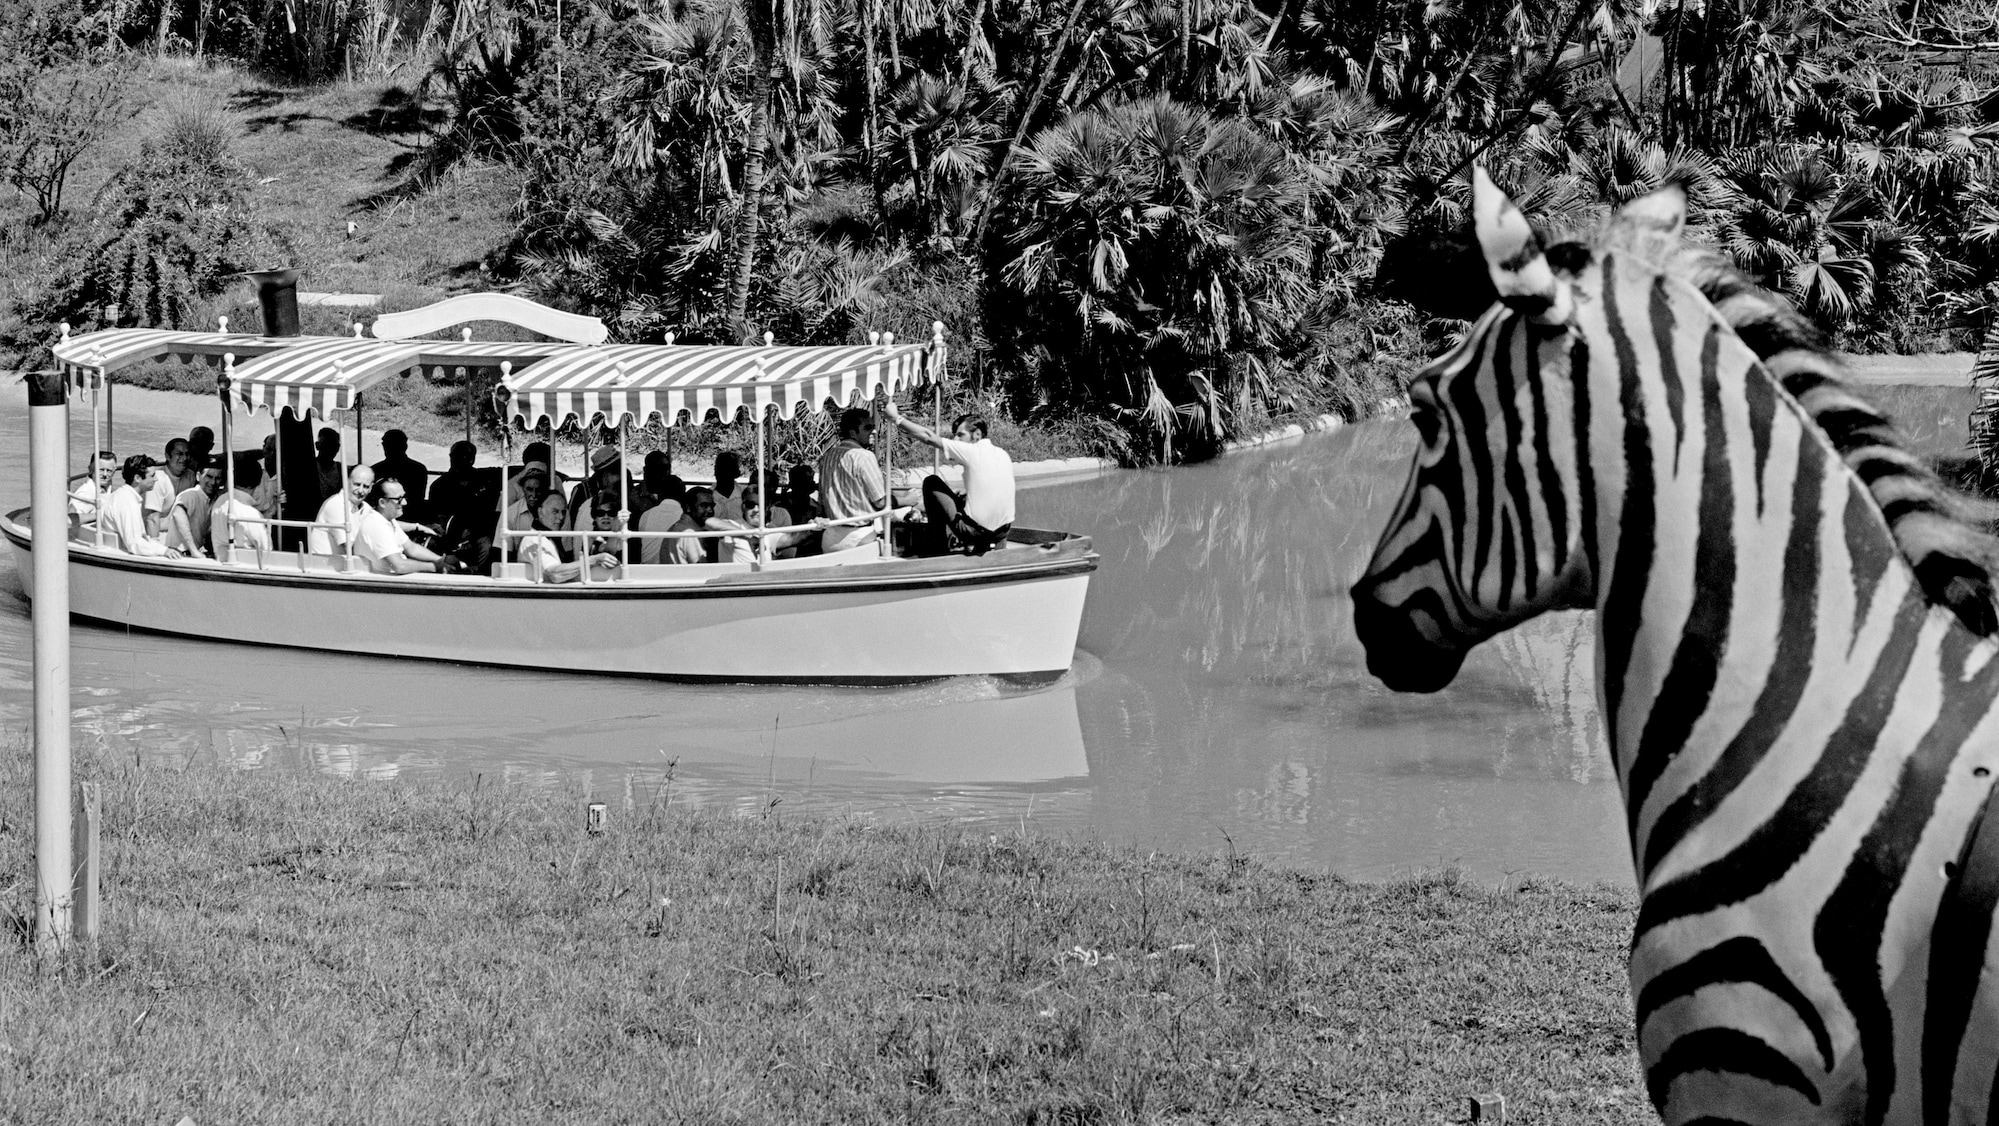 Image of a zebra and a boat from the Jungle Cruise ride.